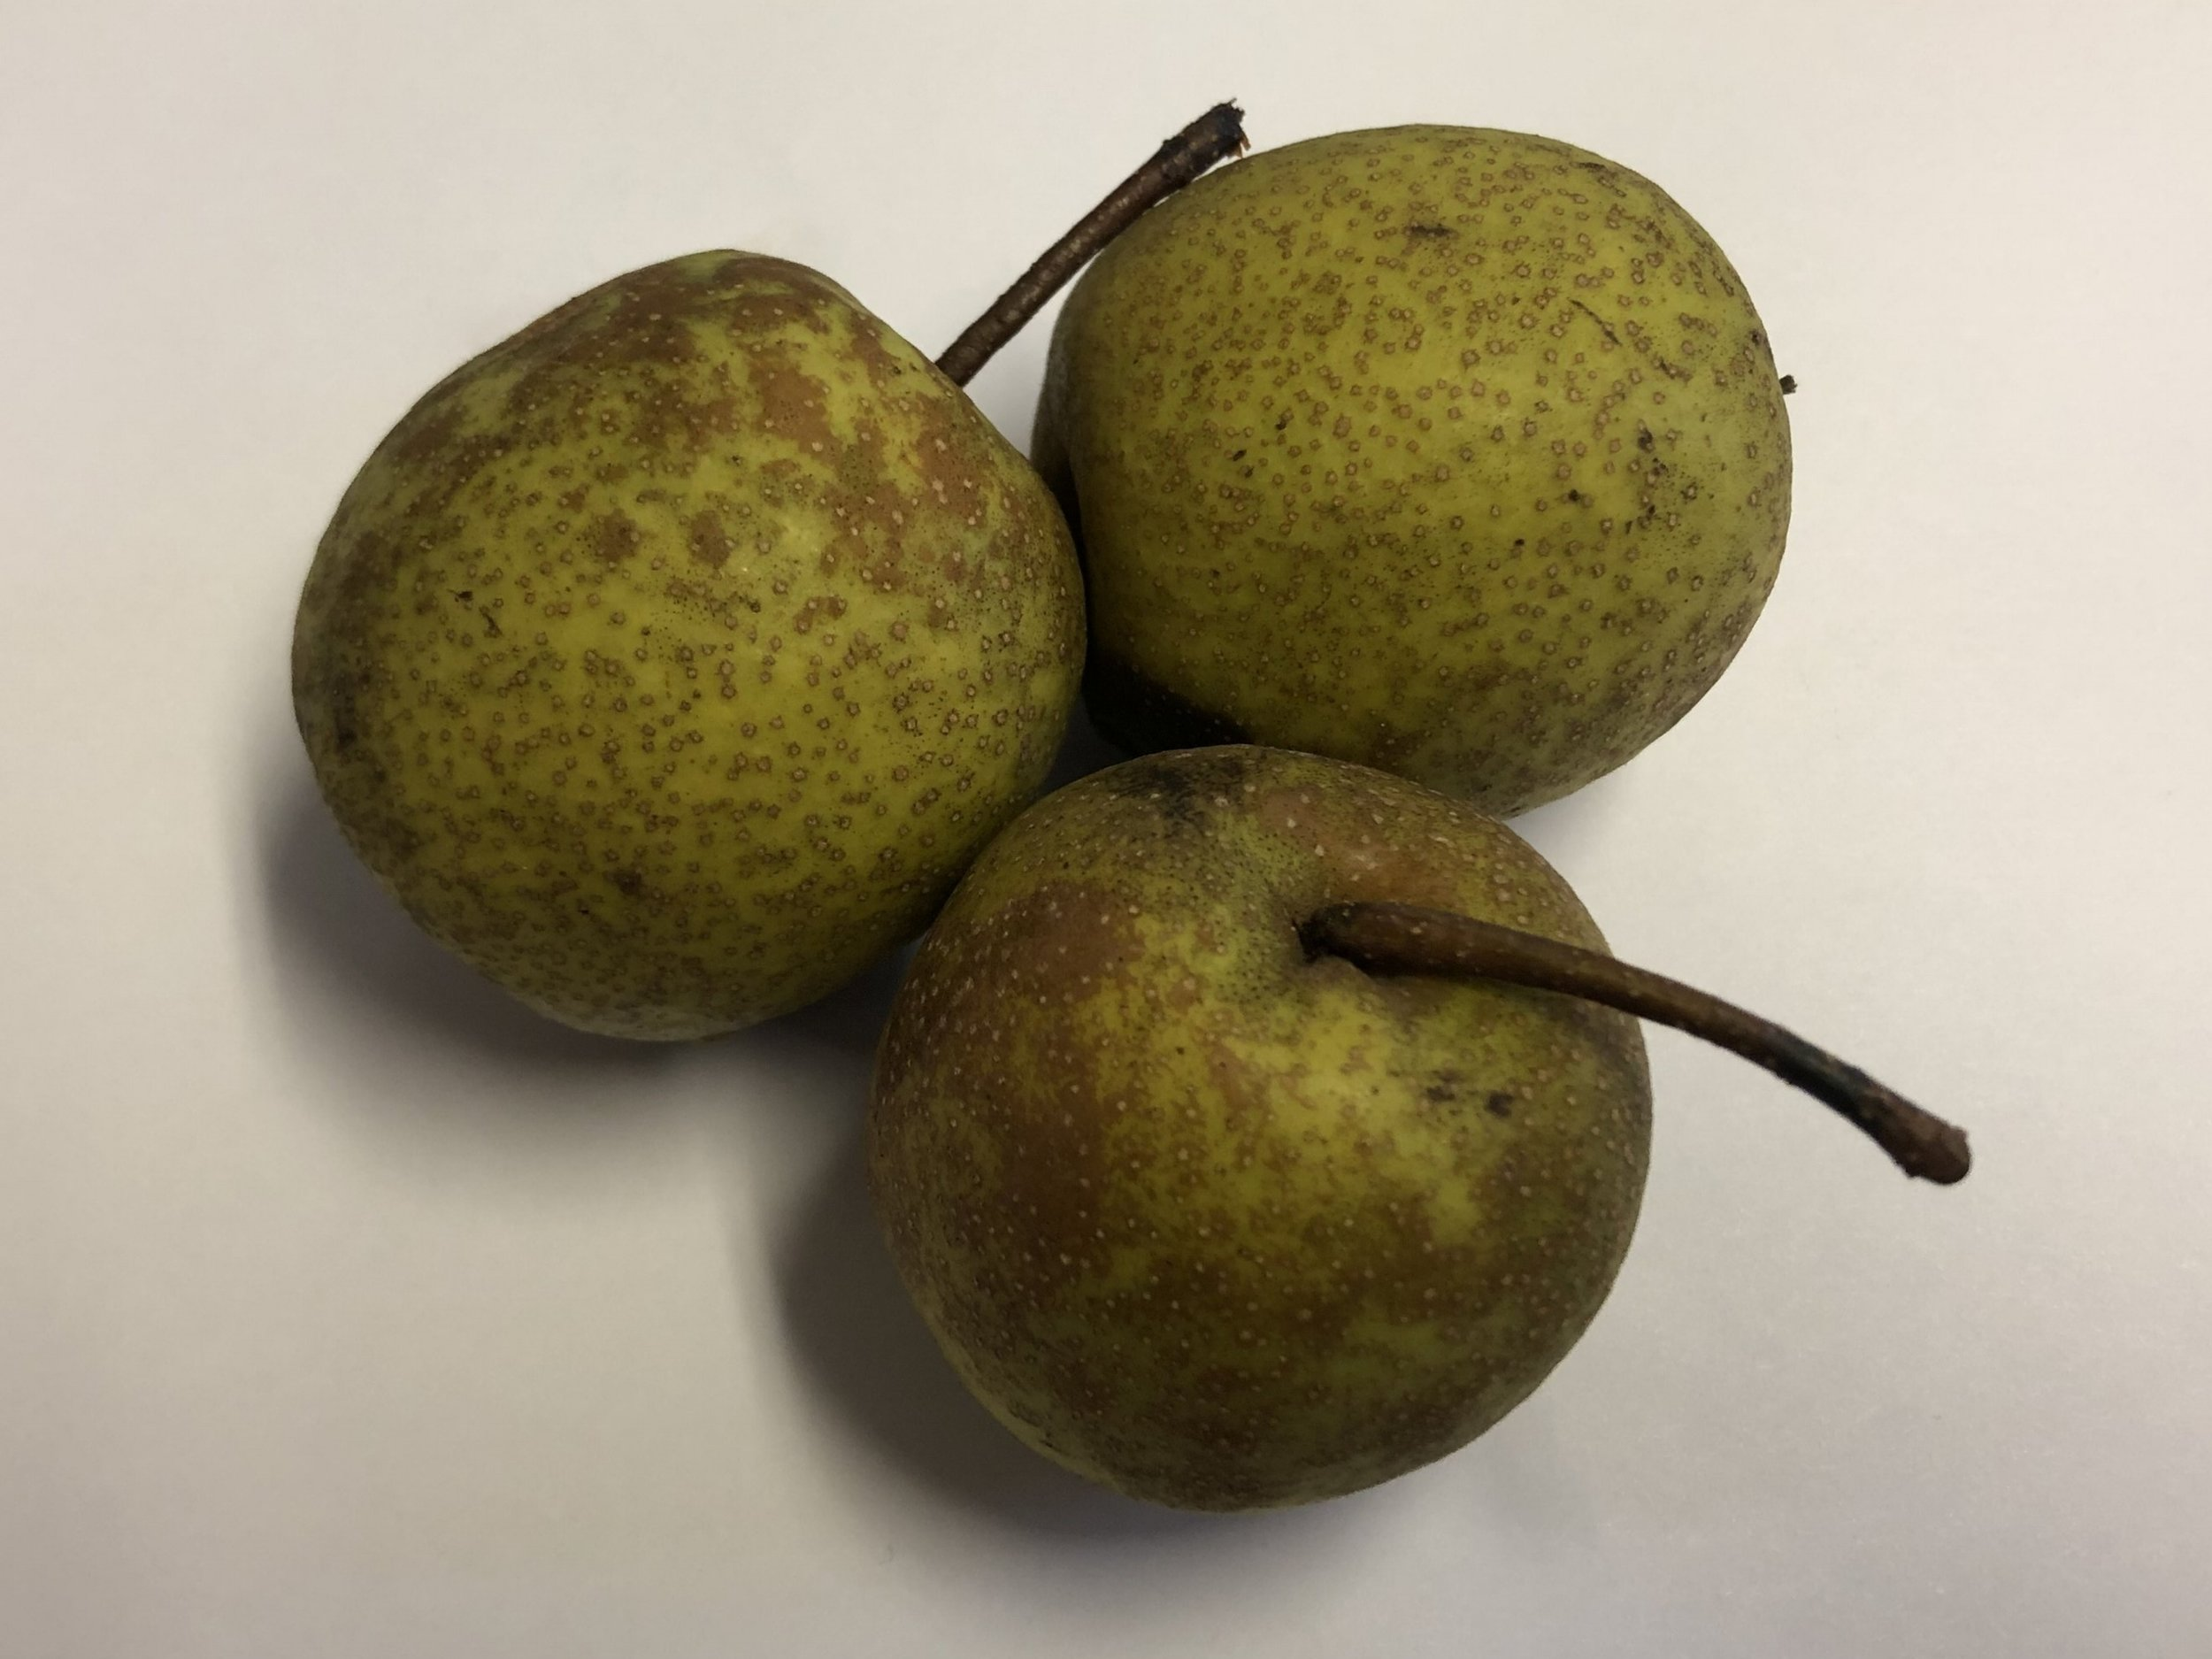 Granddad Pears showing the size. It's a great Wildlife Food.